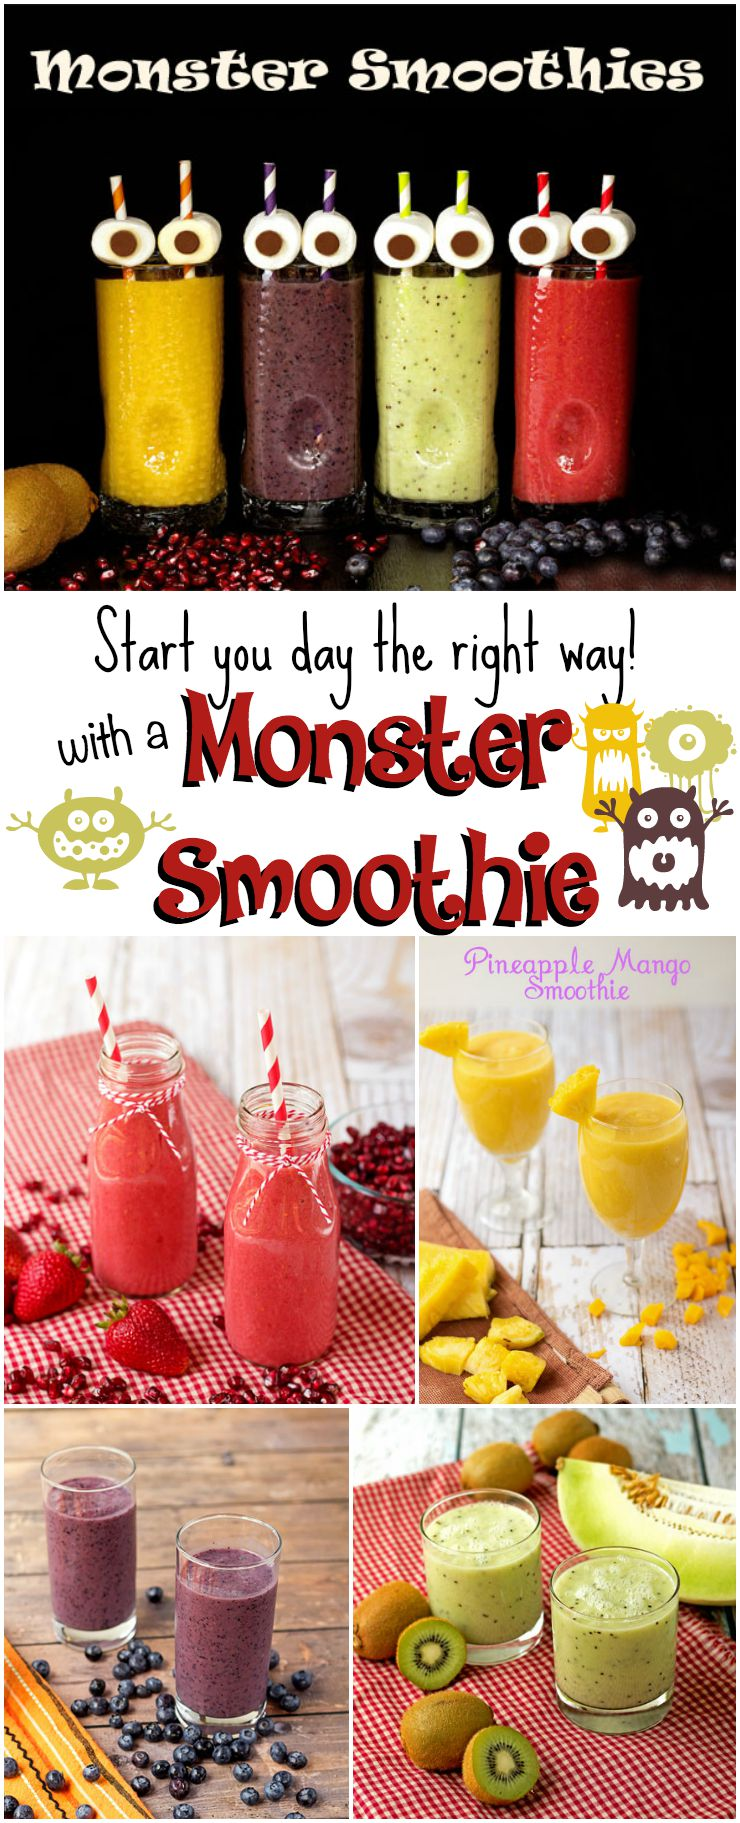 Monster Smoothies to Start your Day Off STRONG-4 Smoothie Recipes via www.thebearfootbaker.com